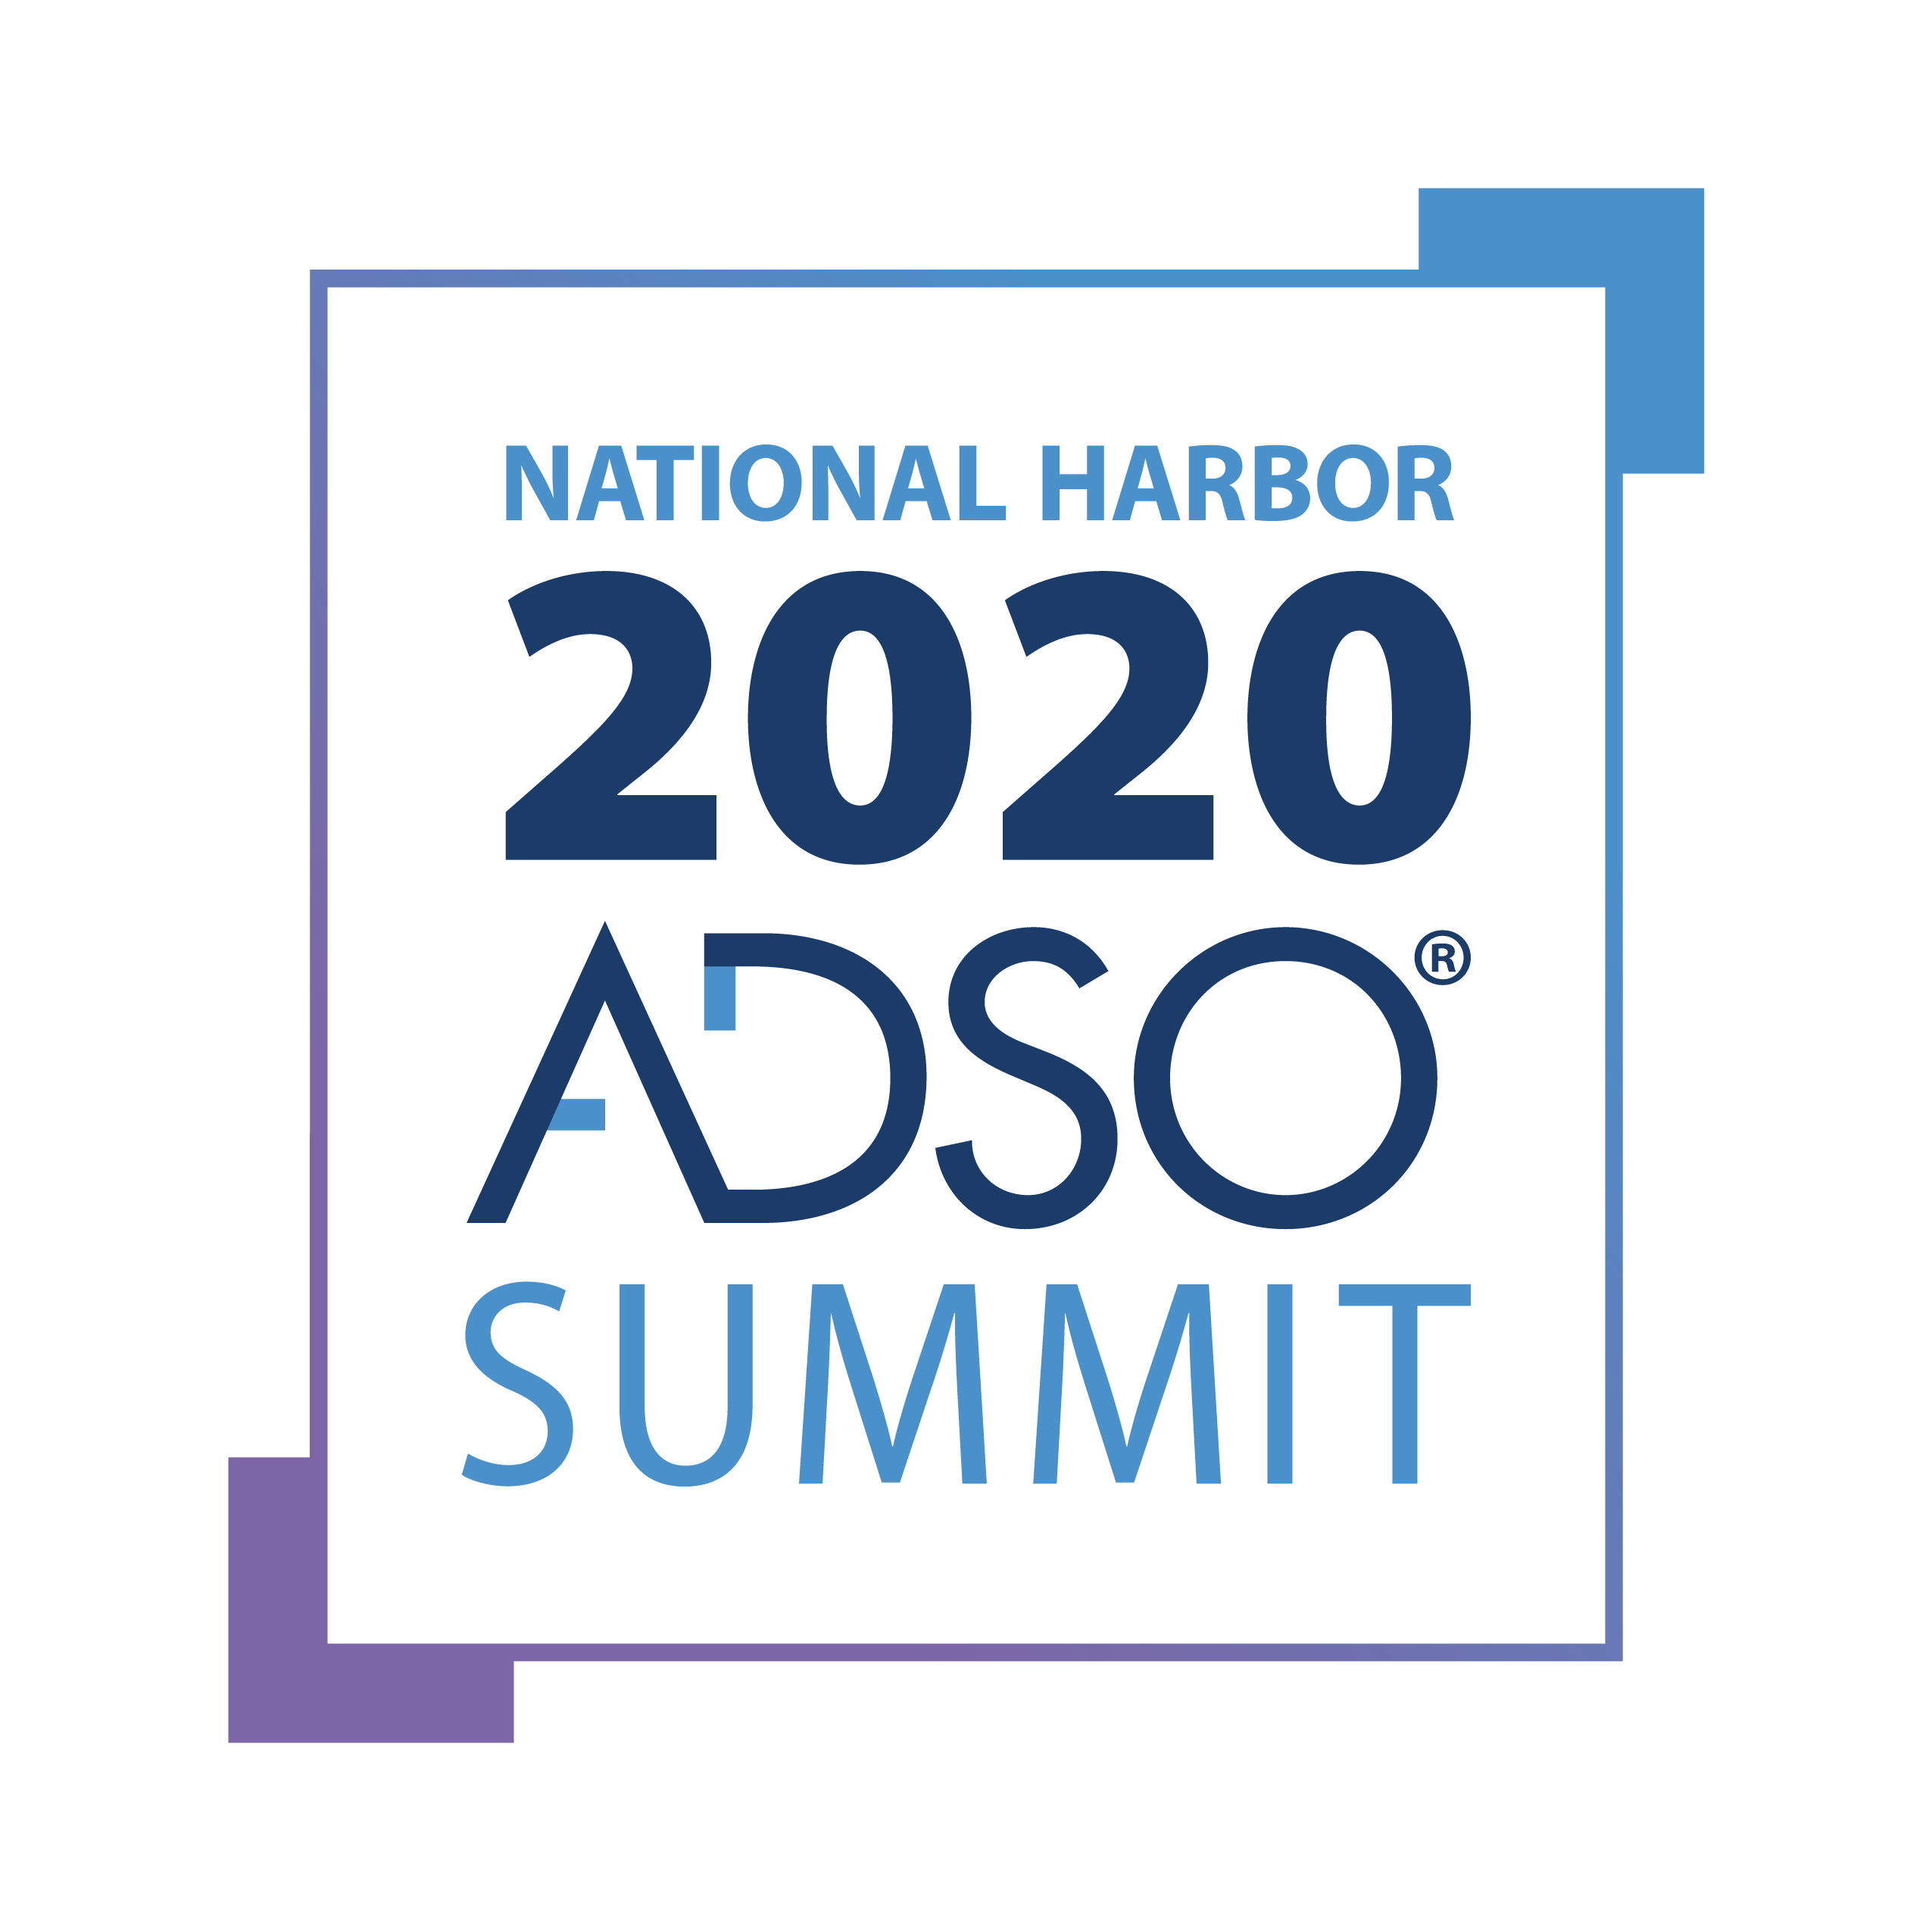 ADSO_2020Summit_RGB_color